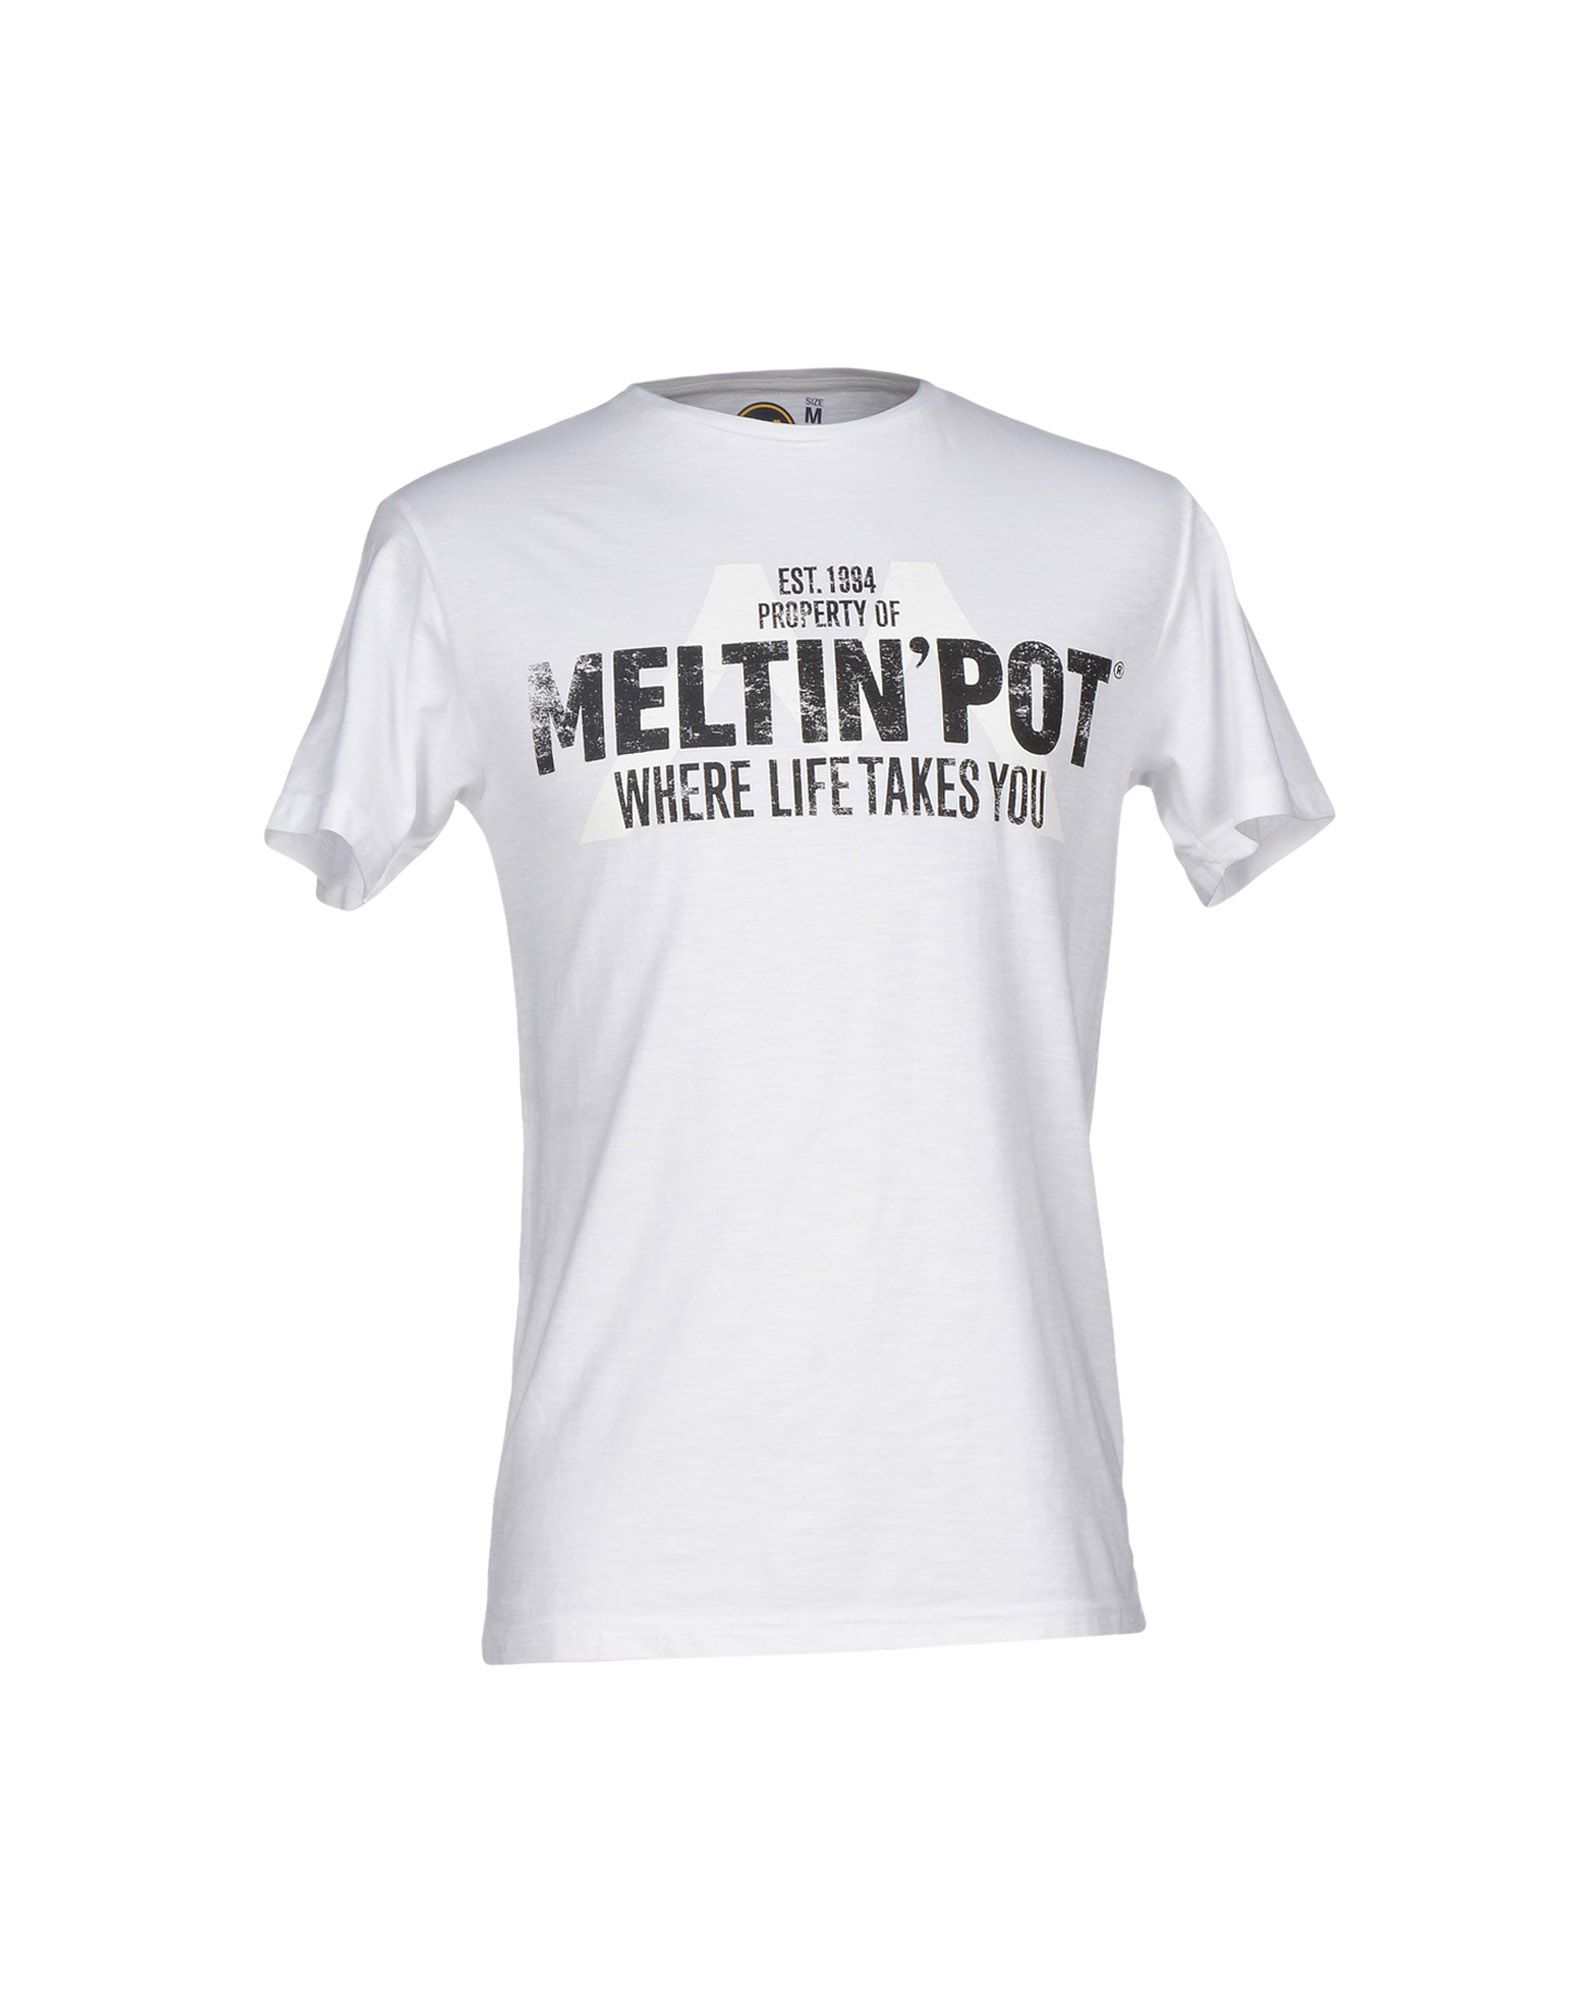 ФОТО meltin pot Футболка